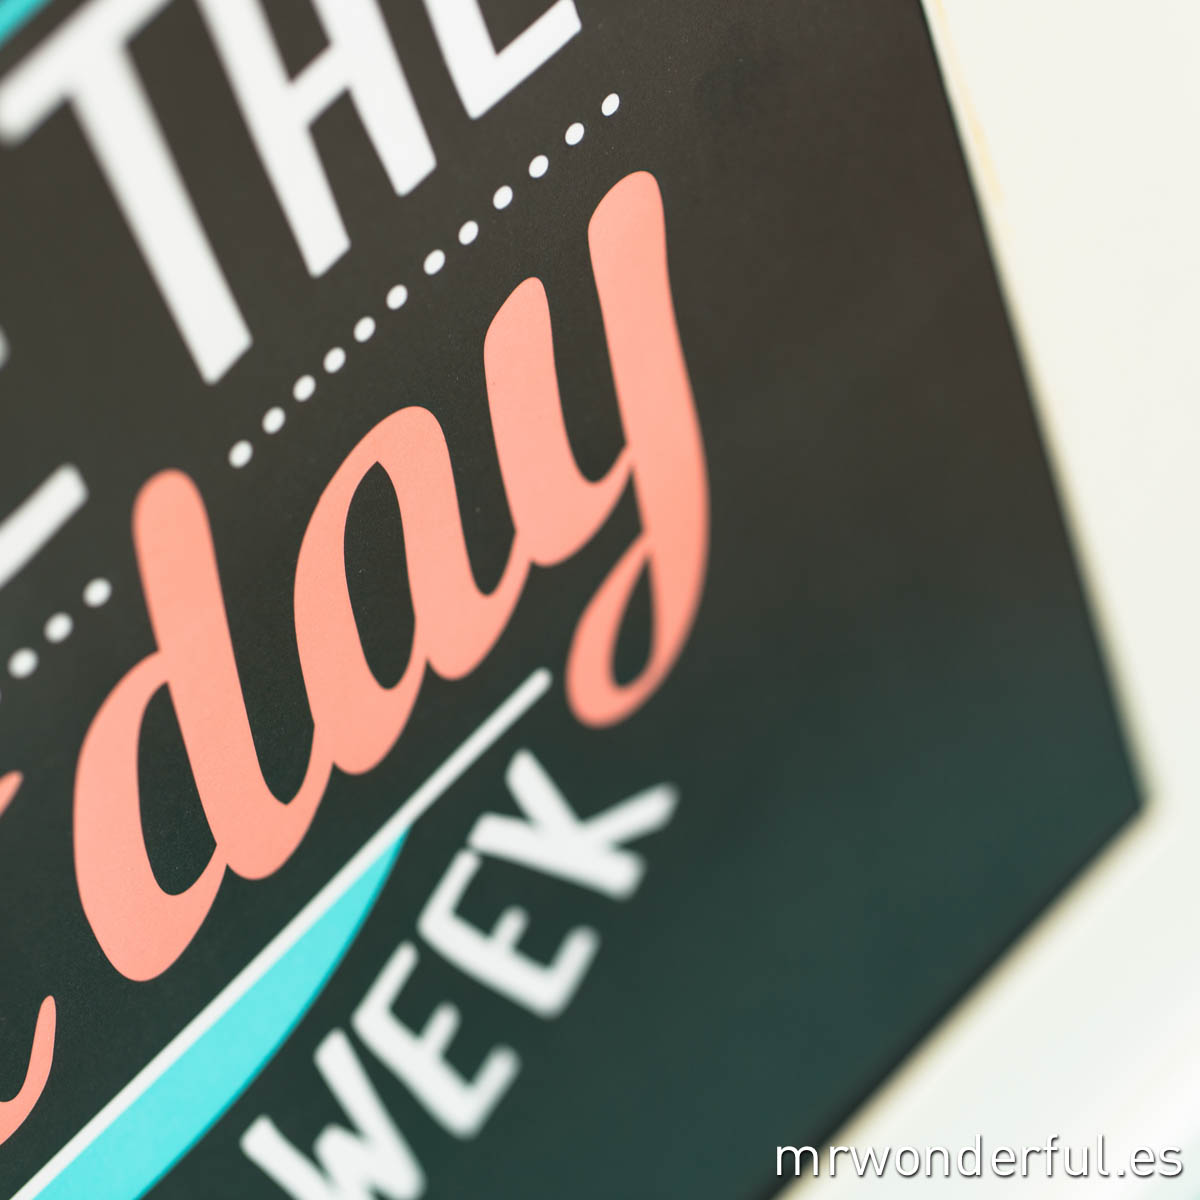 mrwonderful_lamina_today−best−day−ofthe−week-12